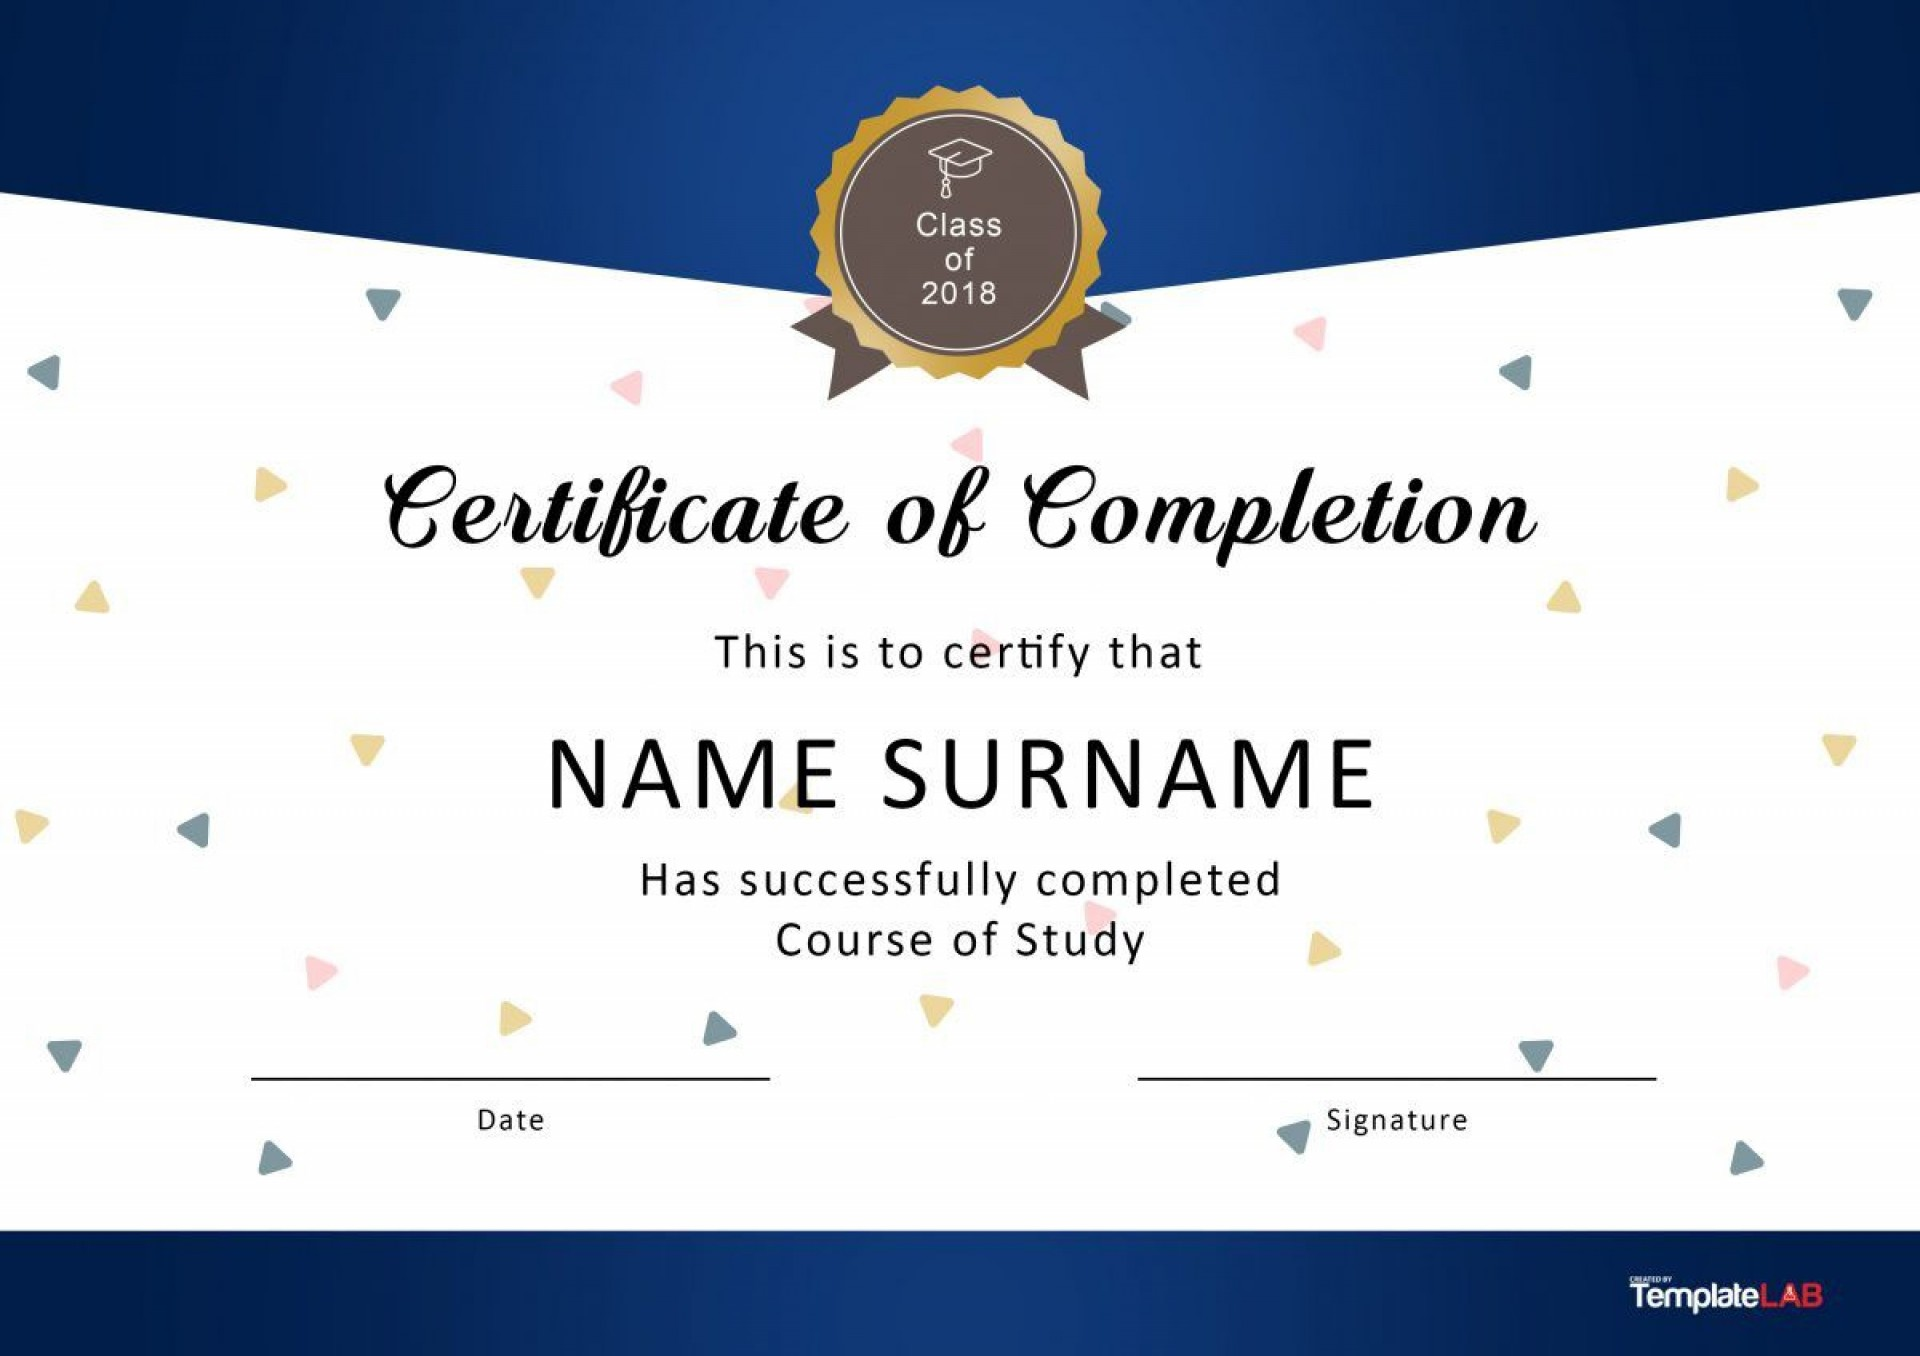 004 Sensational Certificate Of Completion Template Free High Resolution  Training Download Word1920